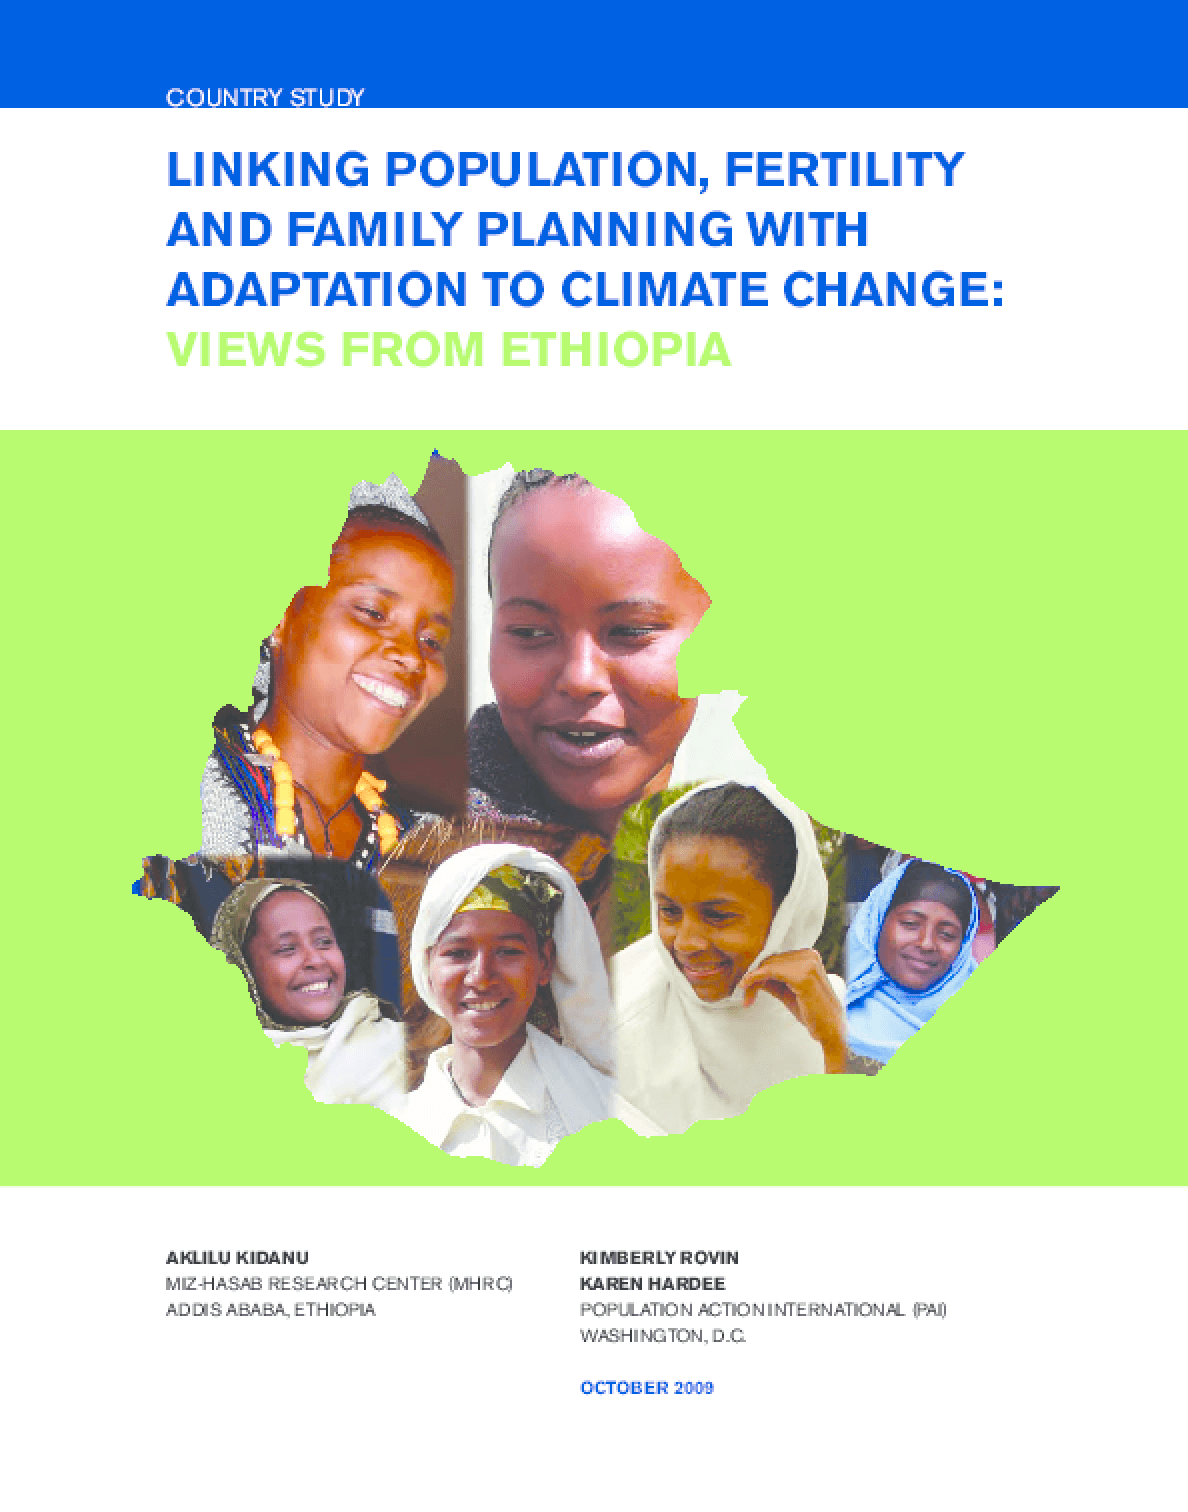 Linking Population, Fertility and Family Planning with Adaptation to Climate Change: Views from Ethiopia